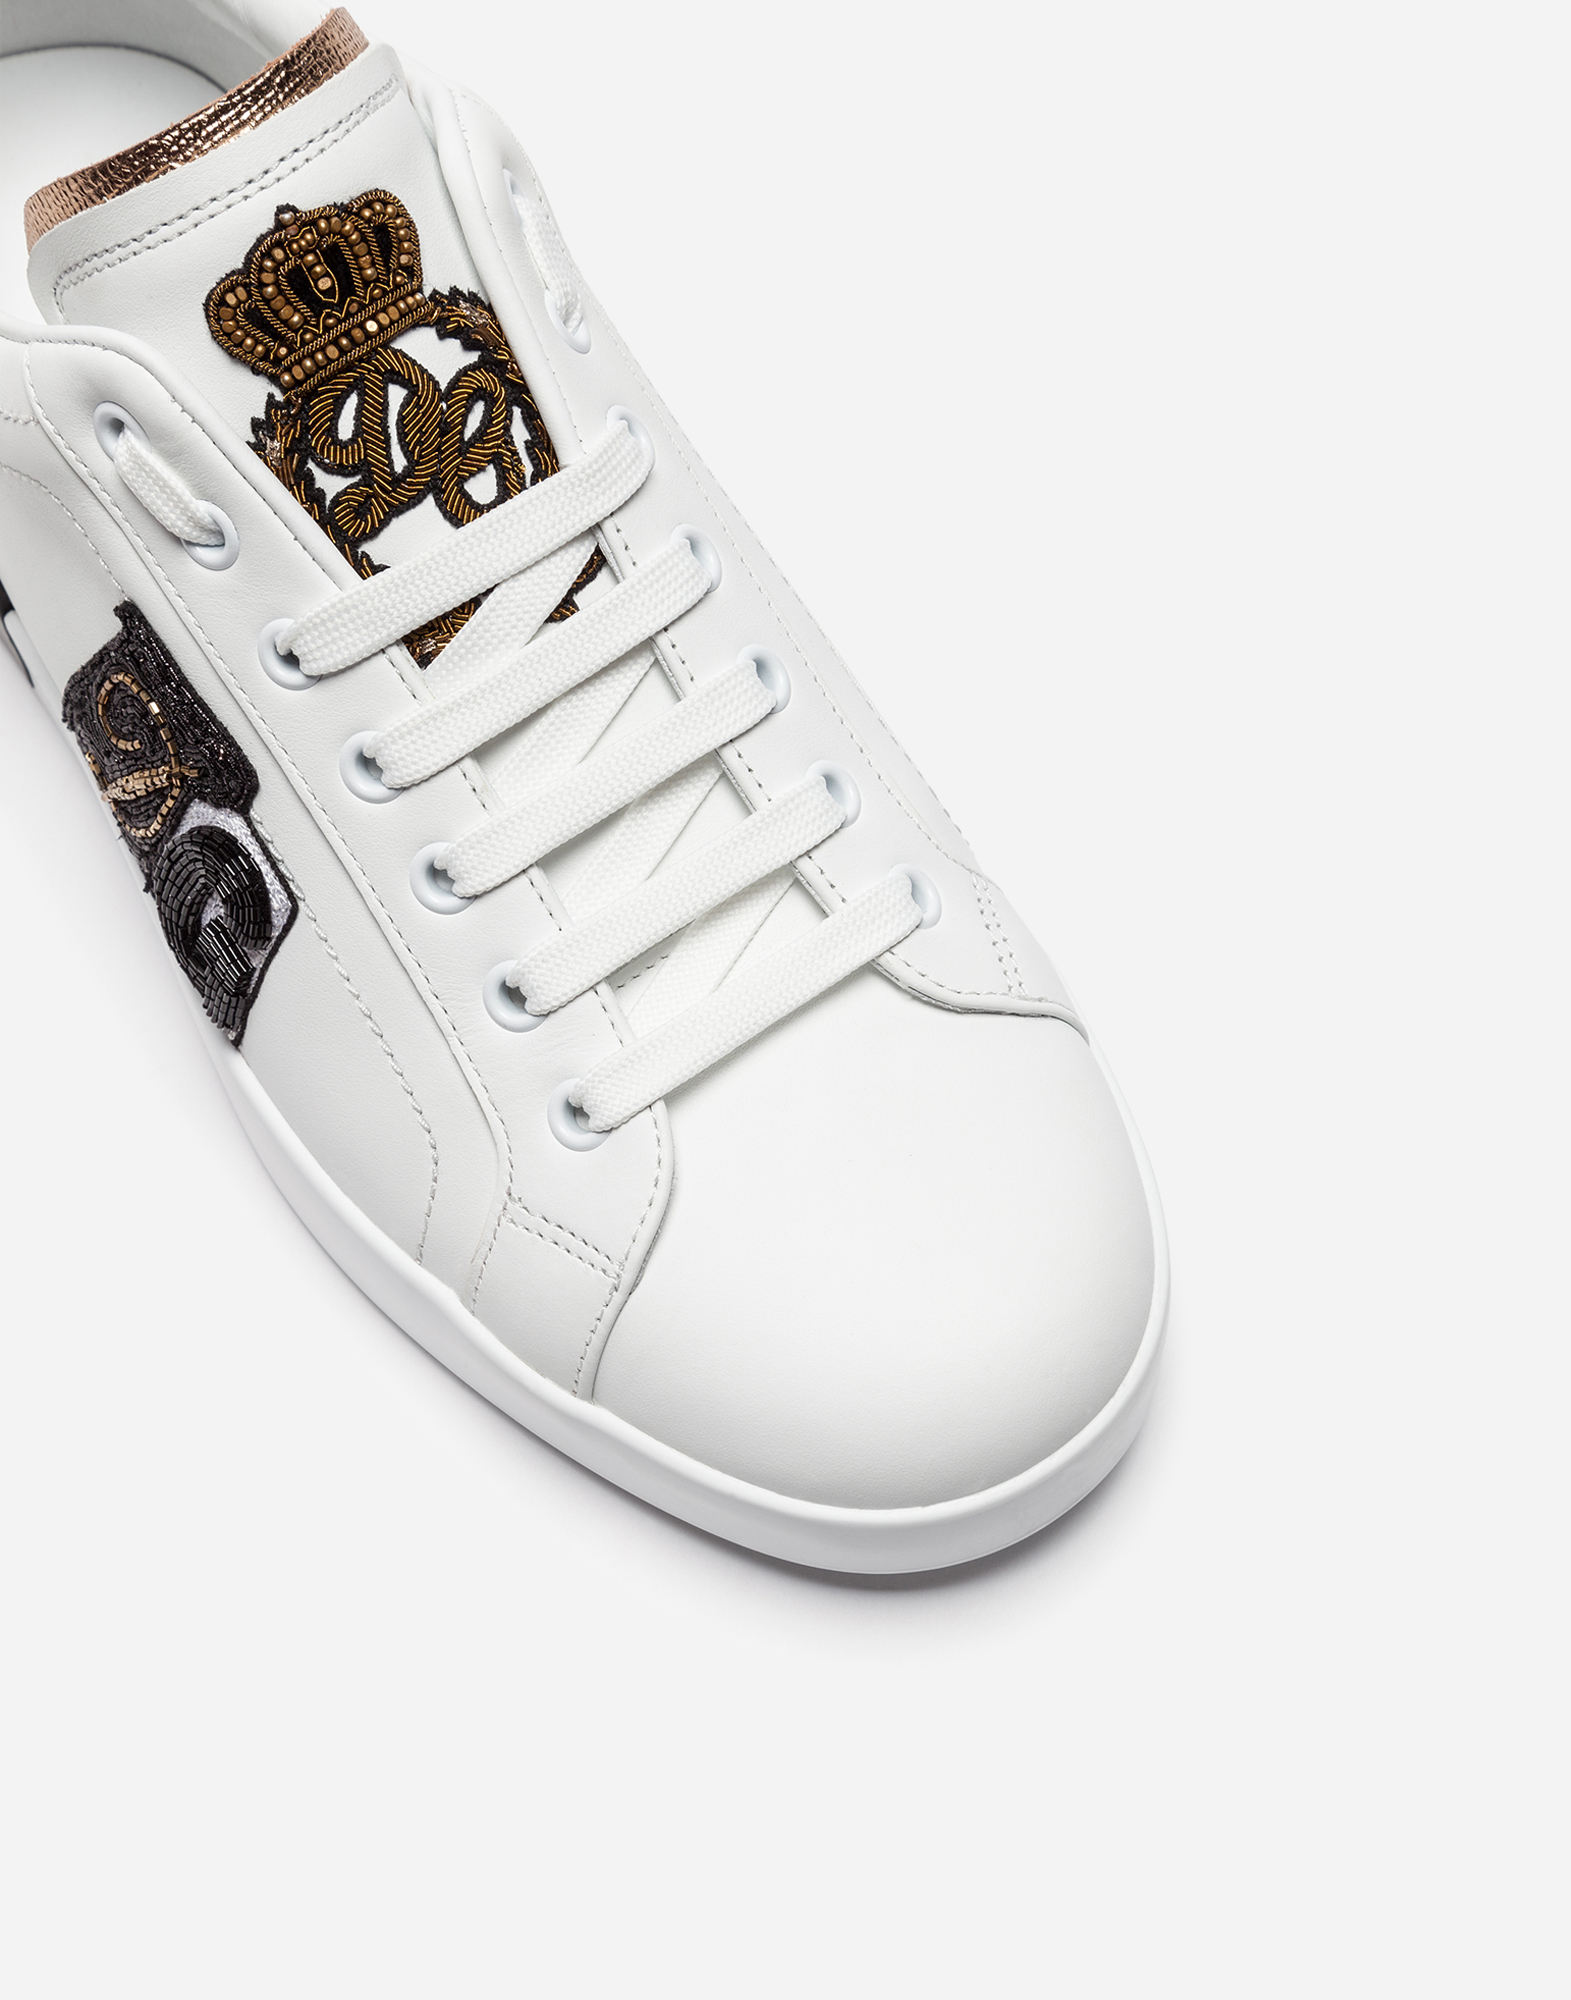 PORTOFINO SNEAKERS IN LEATHER WITH PATCH AND EMBROIDERY